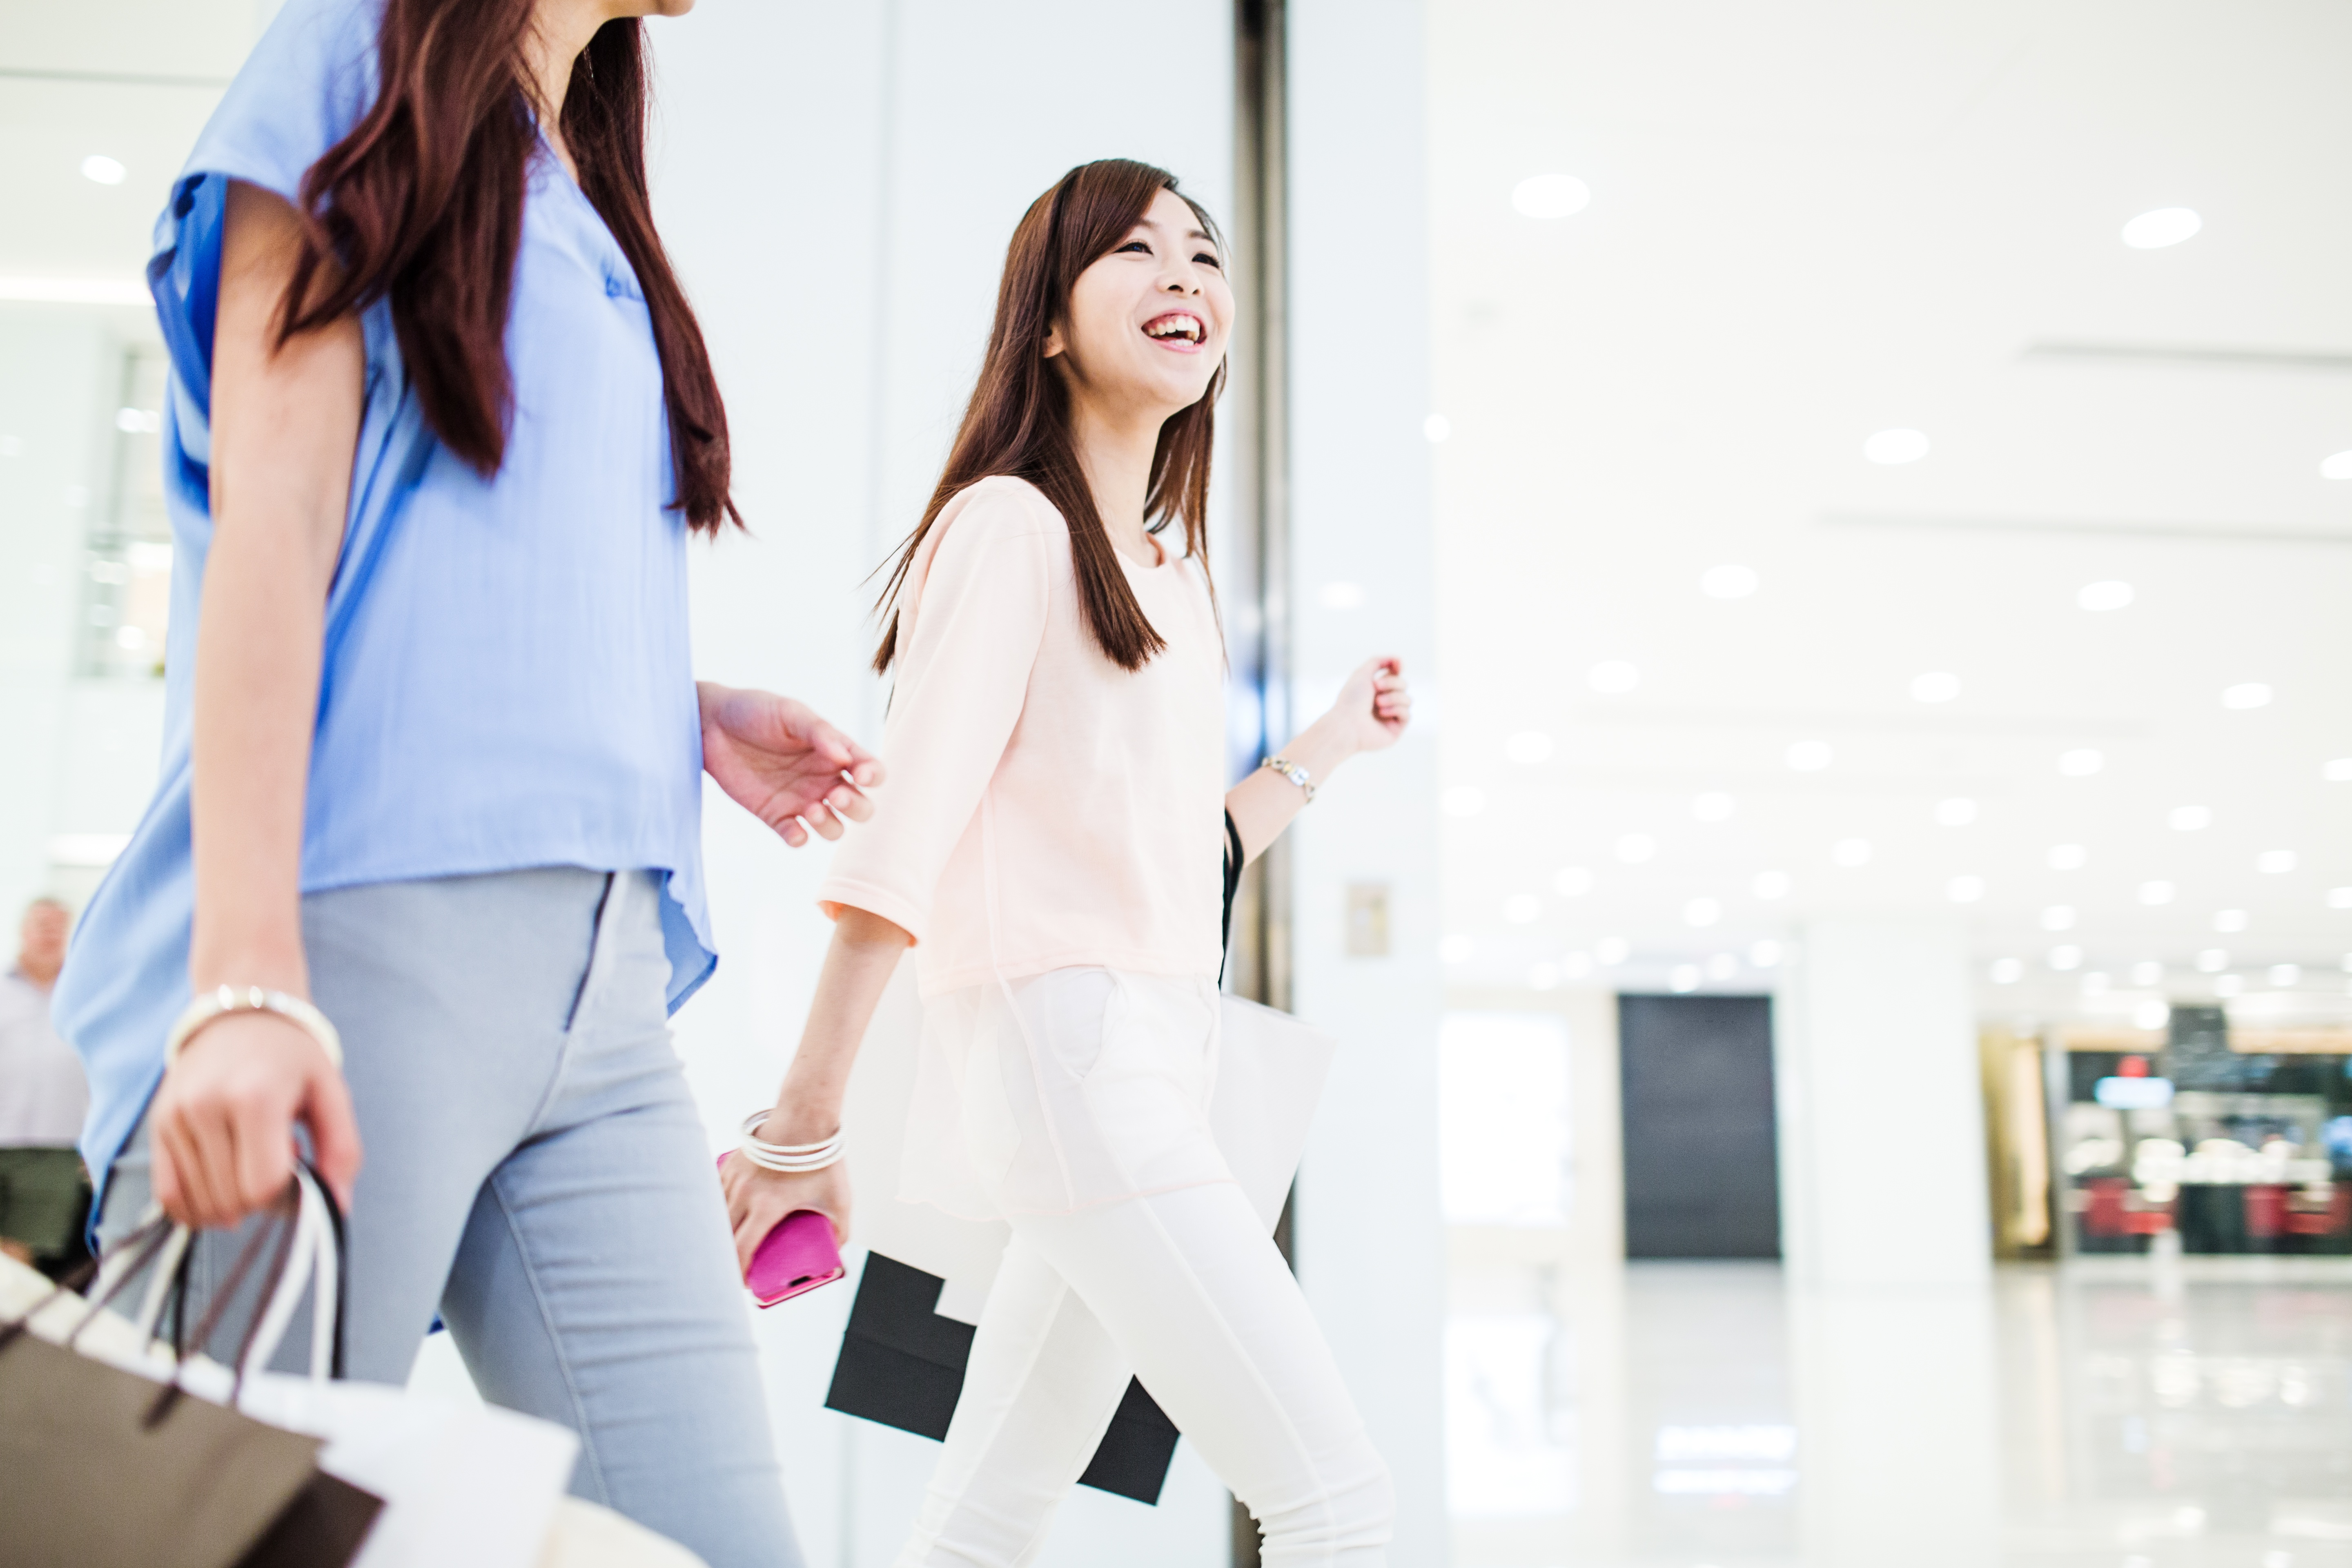 Chinese consumers shopping